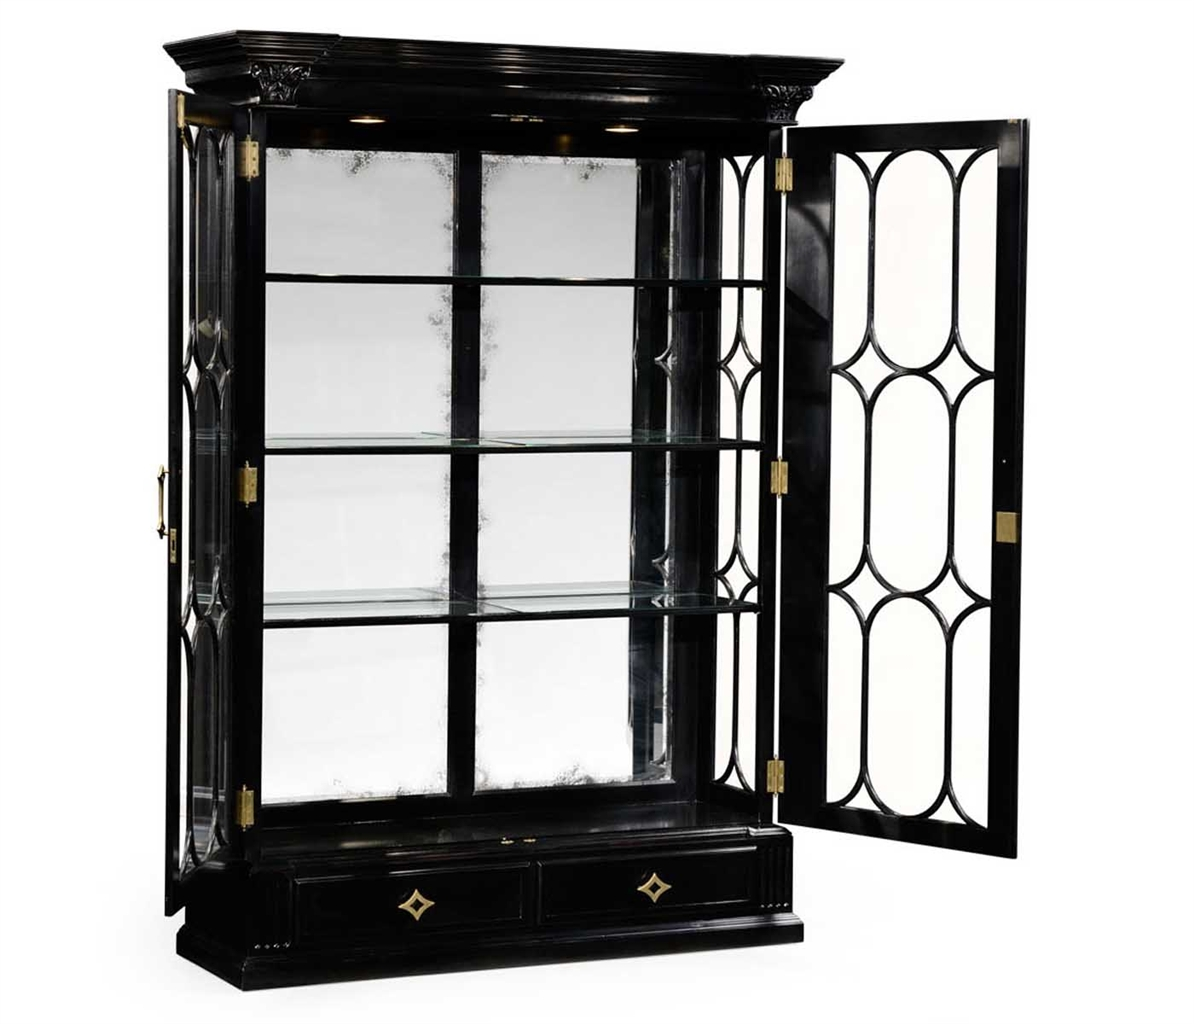 Breakfronts u0026 China Cabinets Black Painted Display Cabinet. Elegant Decor  sc 1 st  Bernadette Livingston & Black Painted Display Cabinet. Elegant Decor